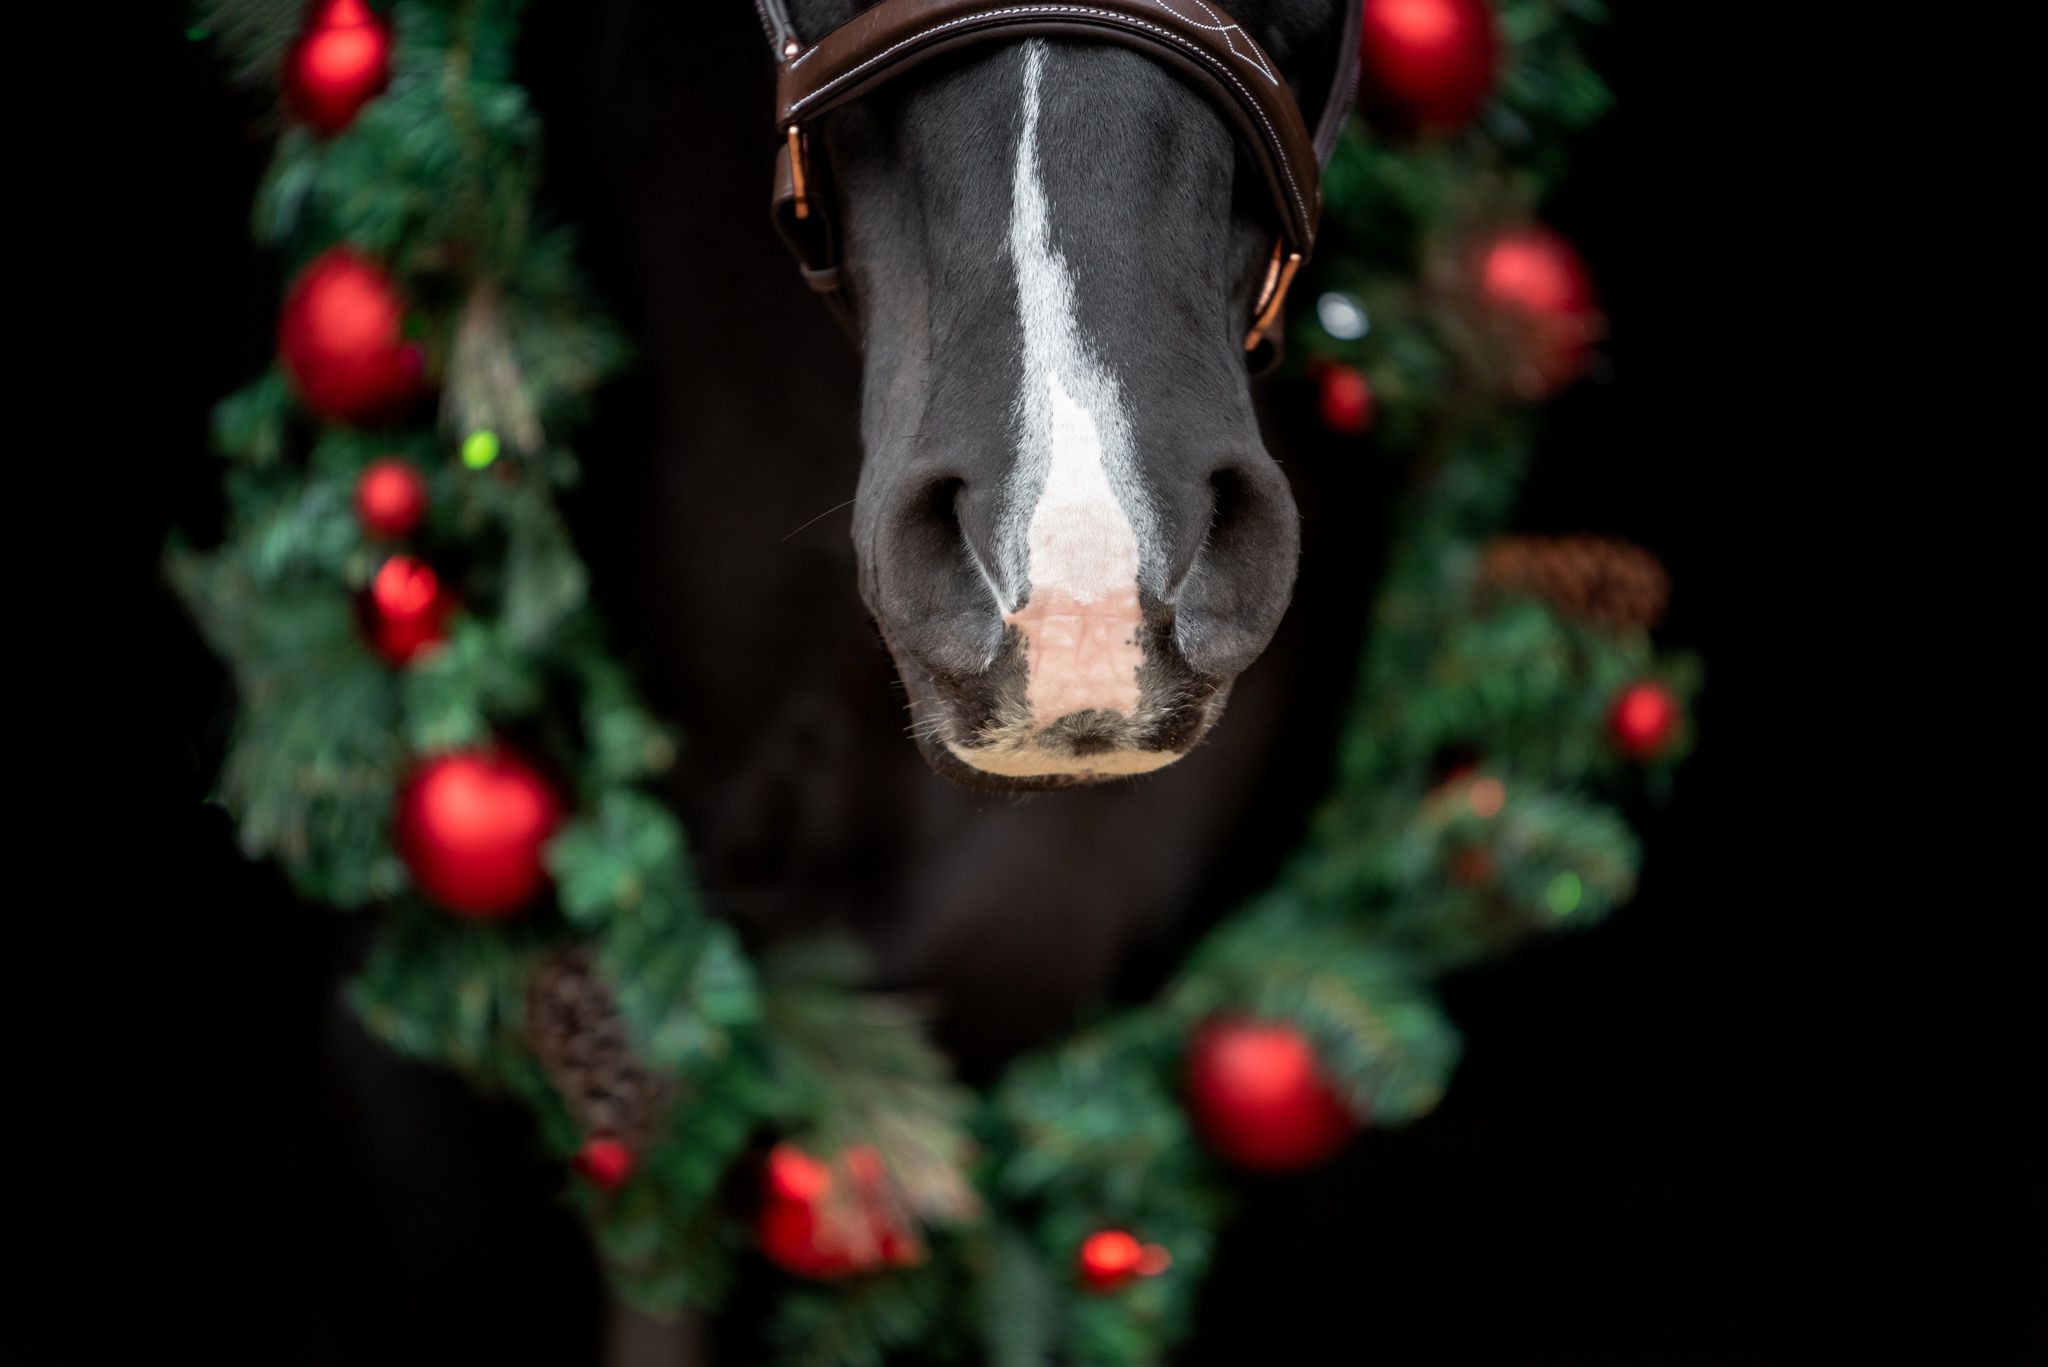 Horse muzzle with holiday wreath in background